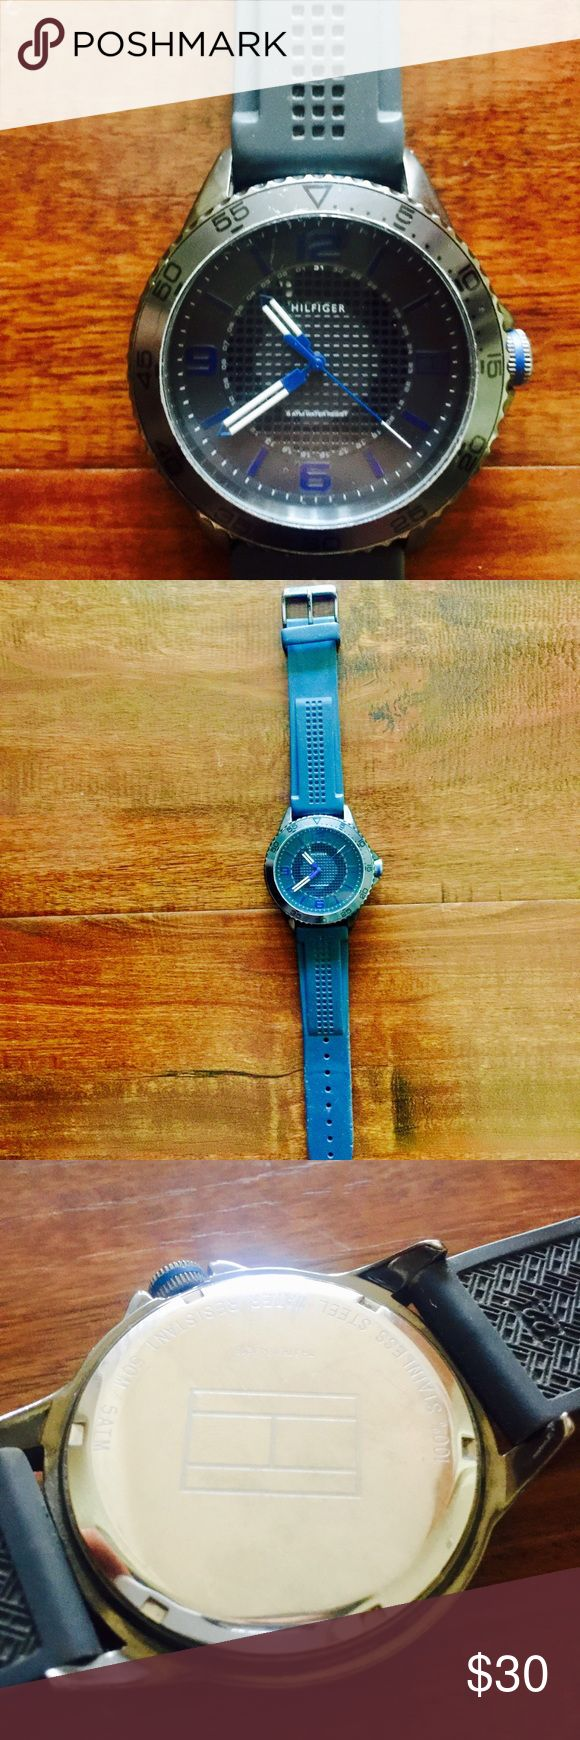 Tommy Hilfiger watch Gray silicone Tommy Hilfiger watch. Good condition used watch. Great for a day to day watch. Tommy Hilfiger Accessories Watches